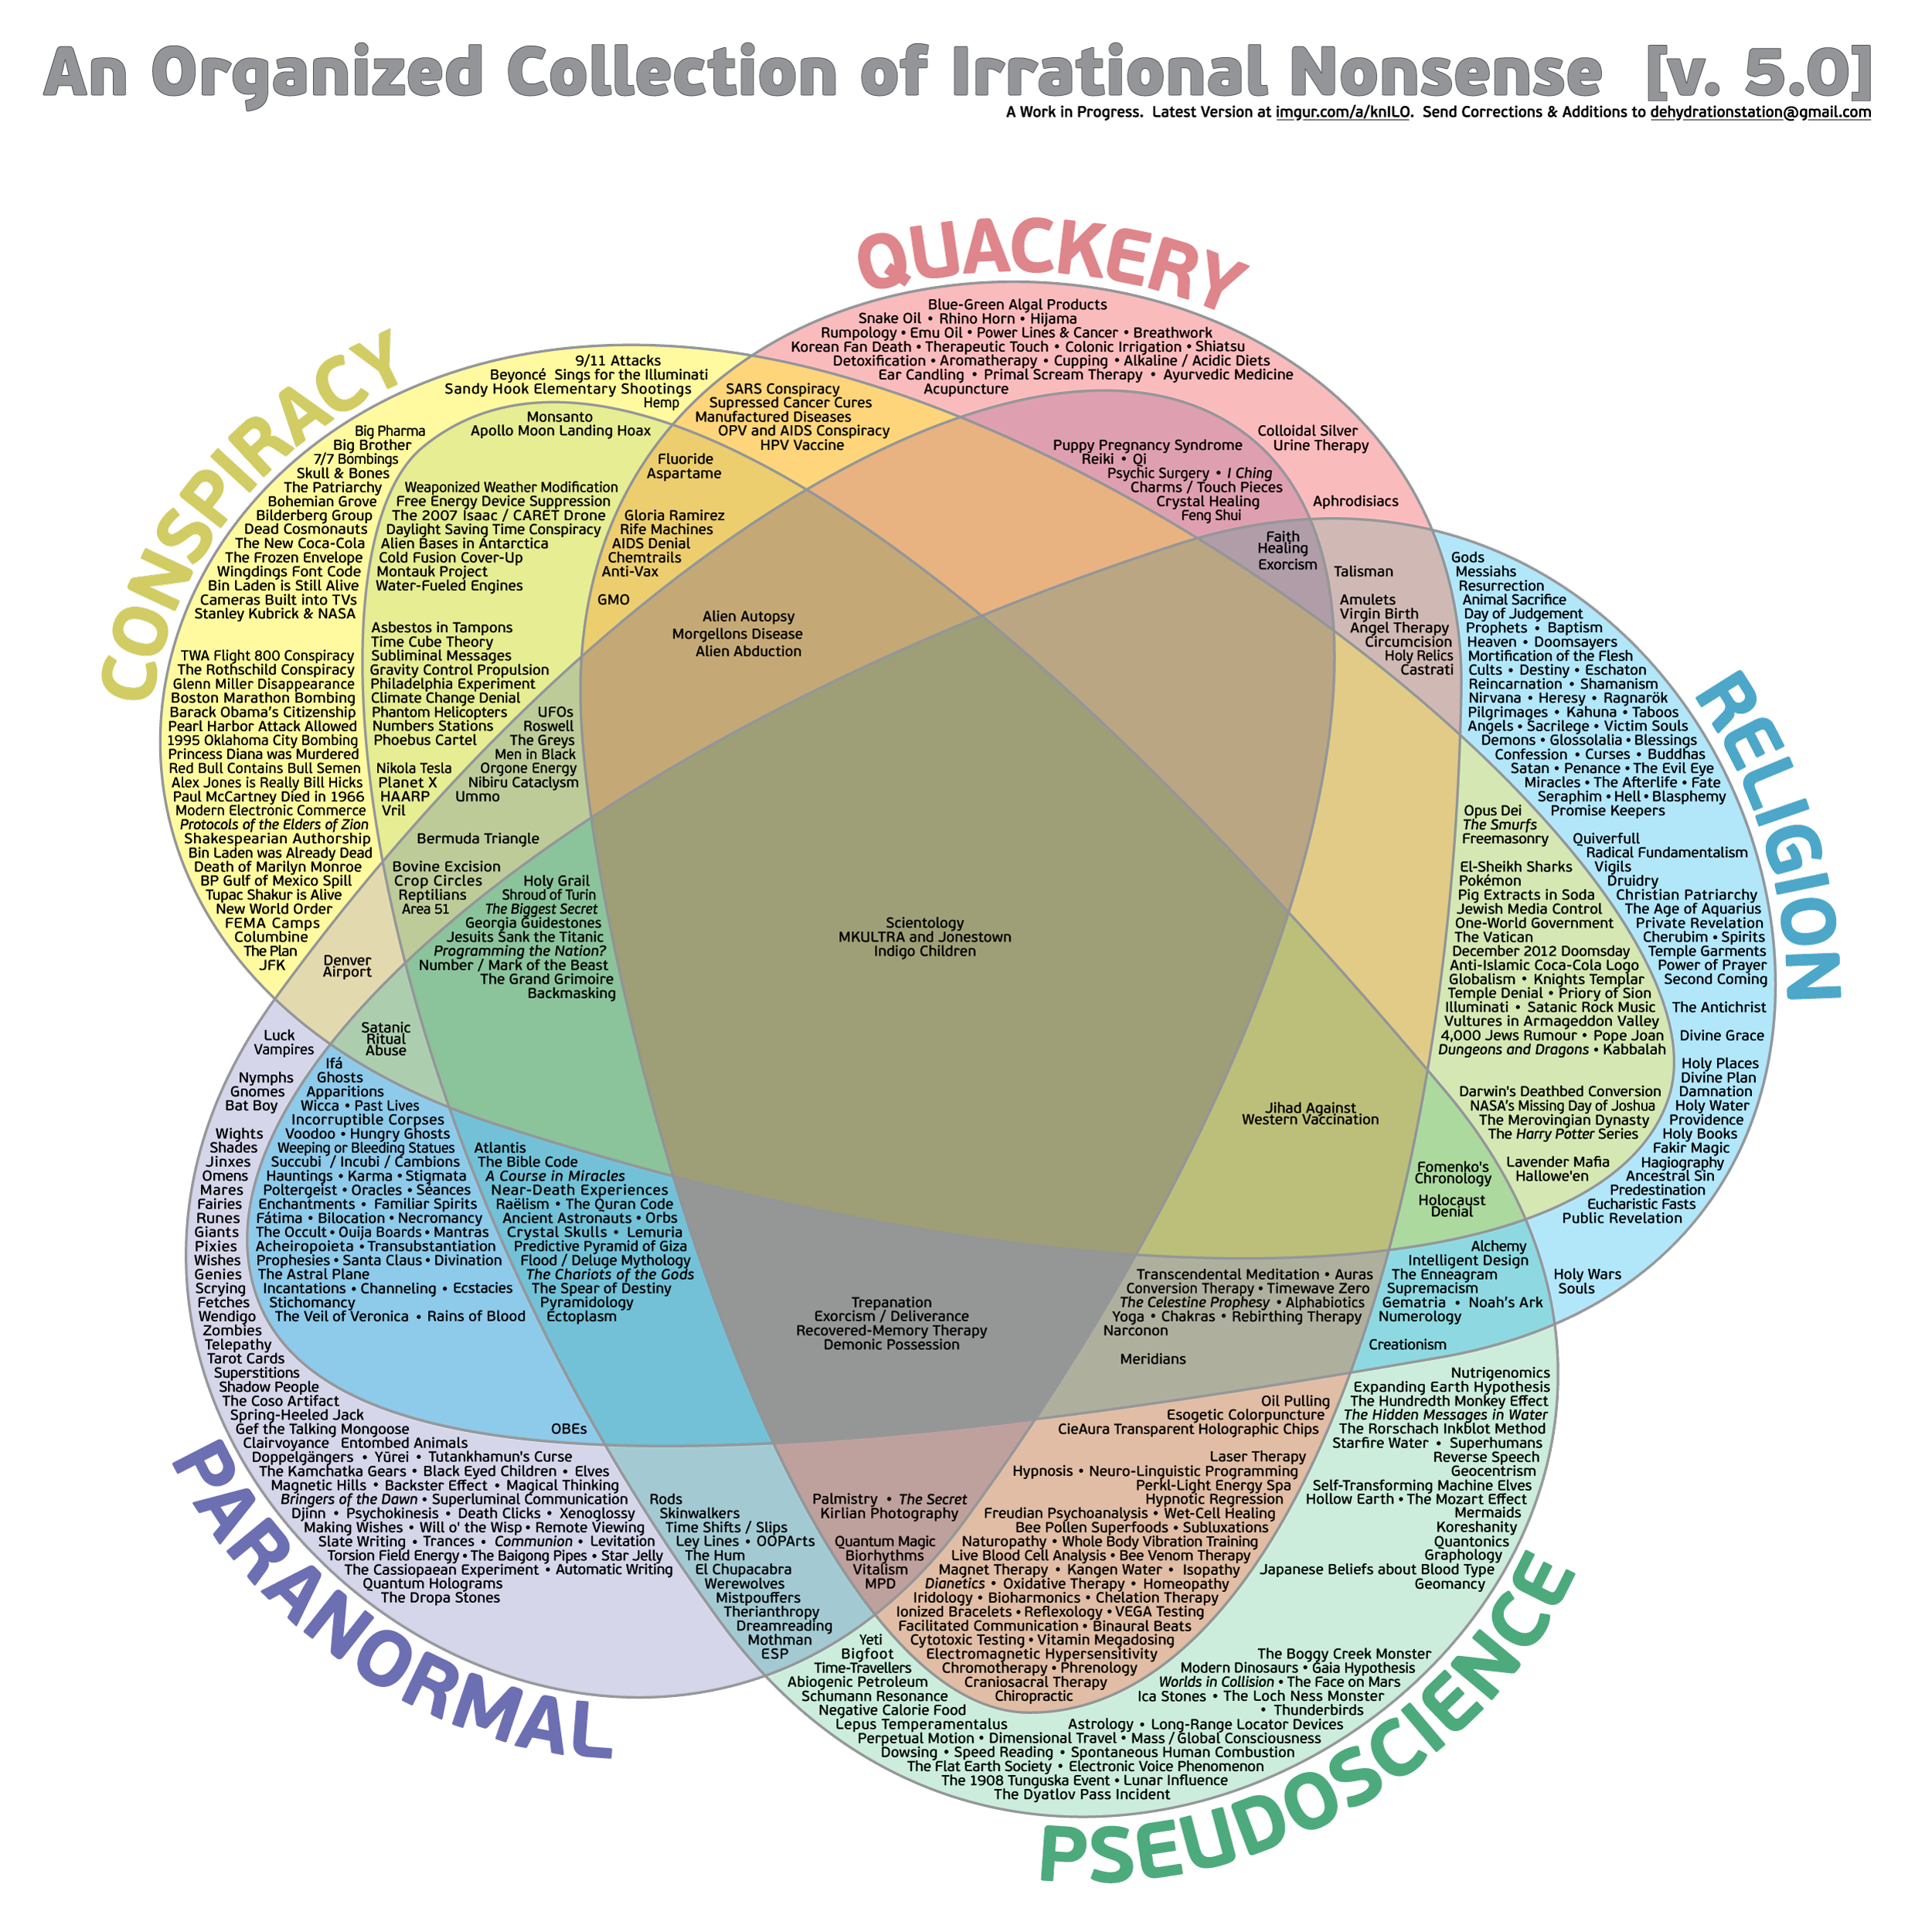 Organized collection of irrational nonsense album on imgur when confronted with irrational nonsense i ofter refer to this venn diagram pooptronica